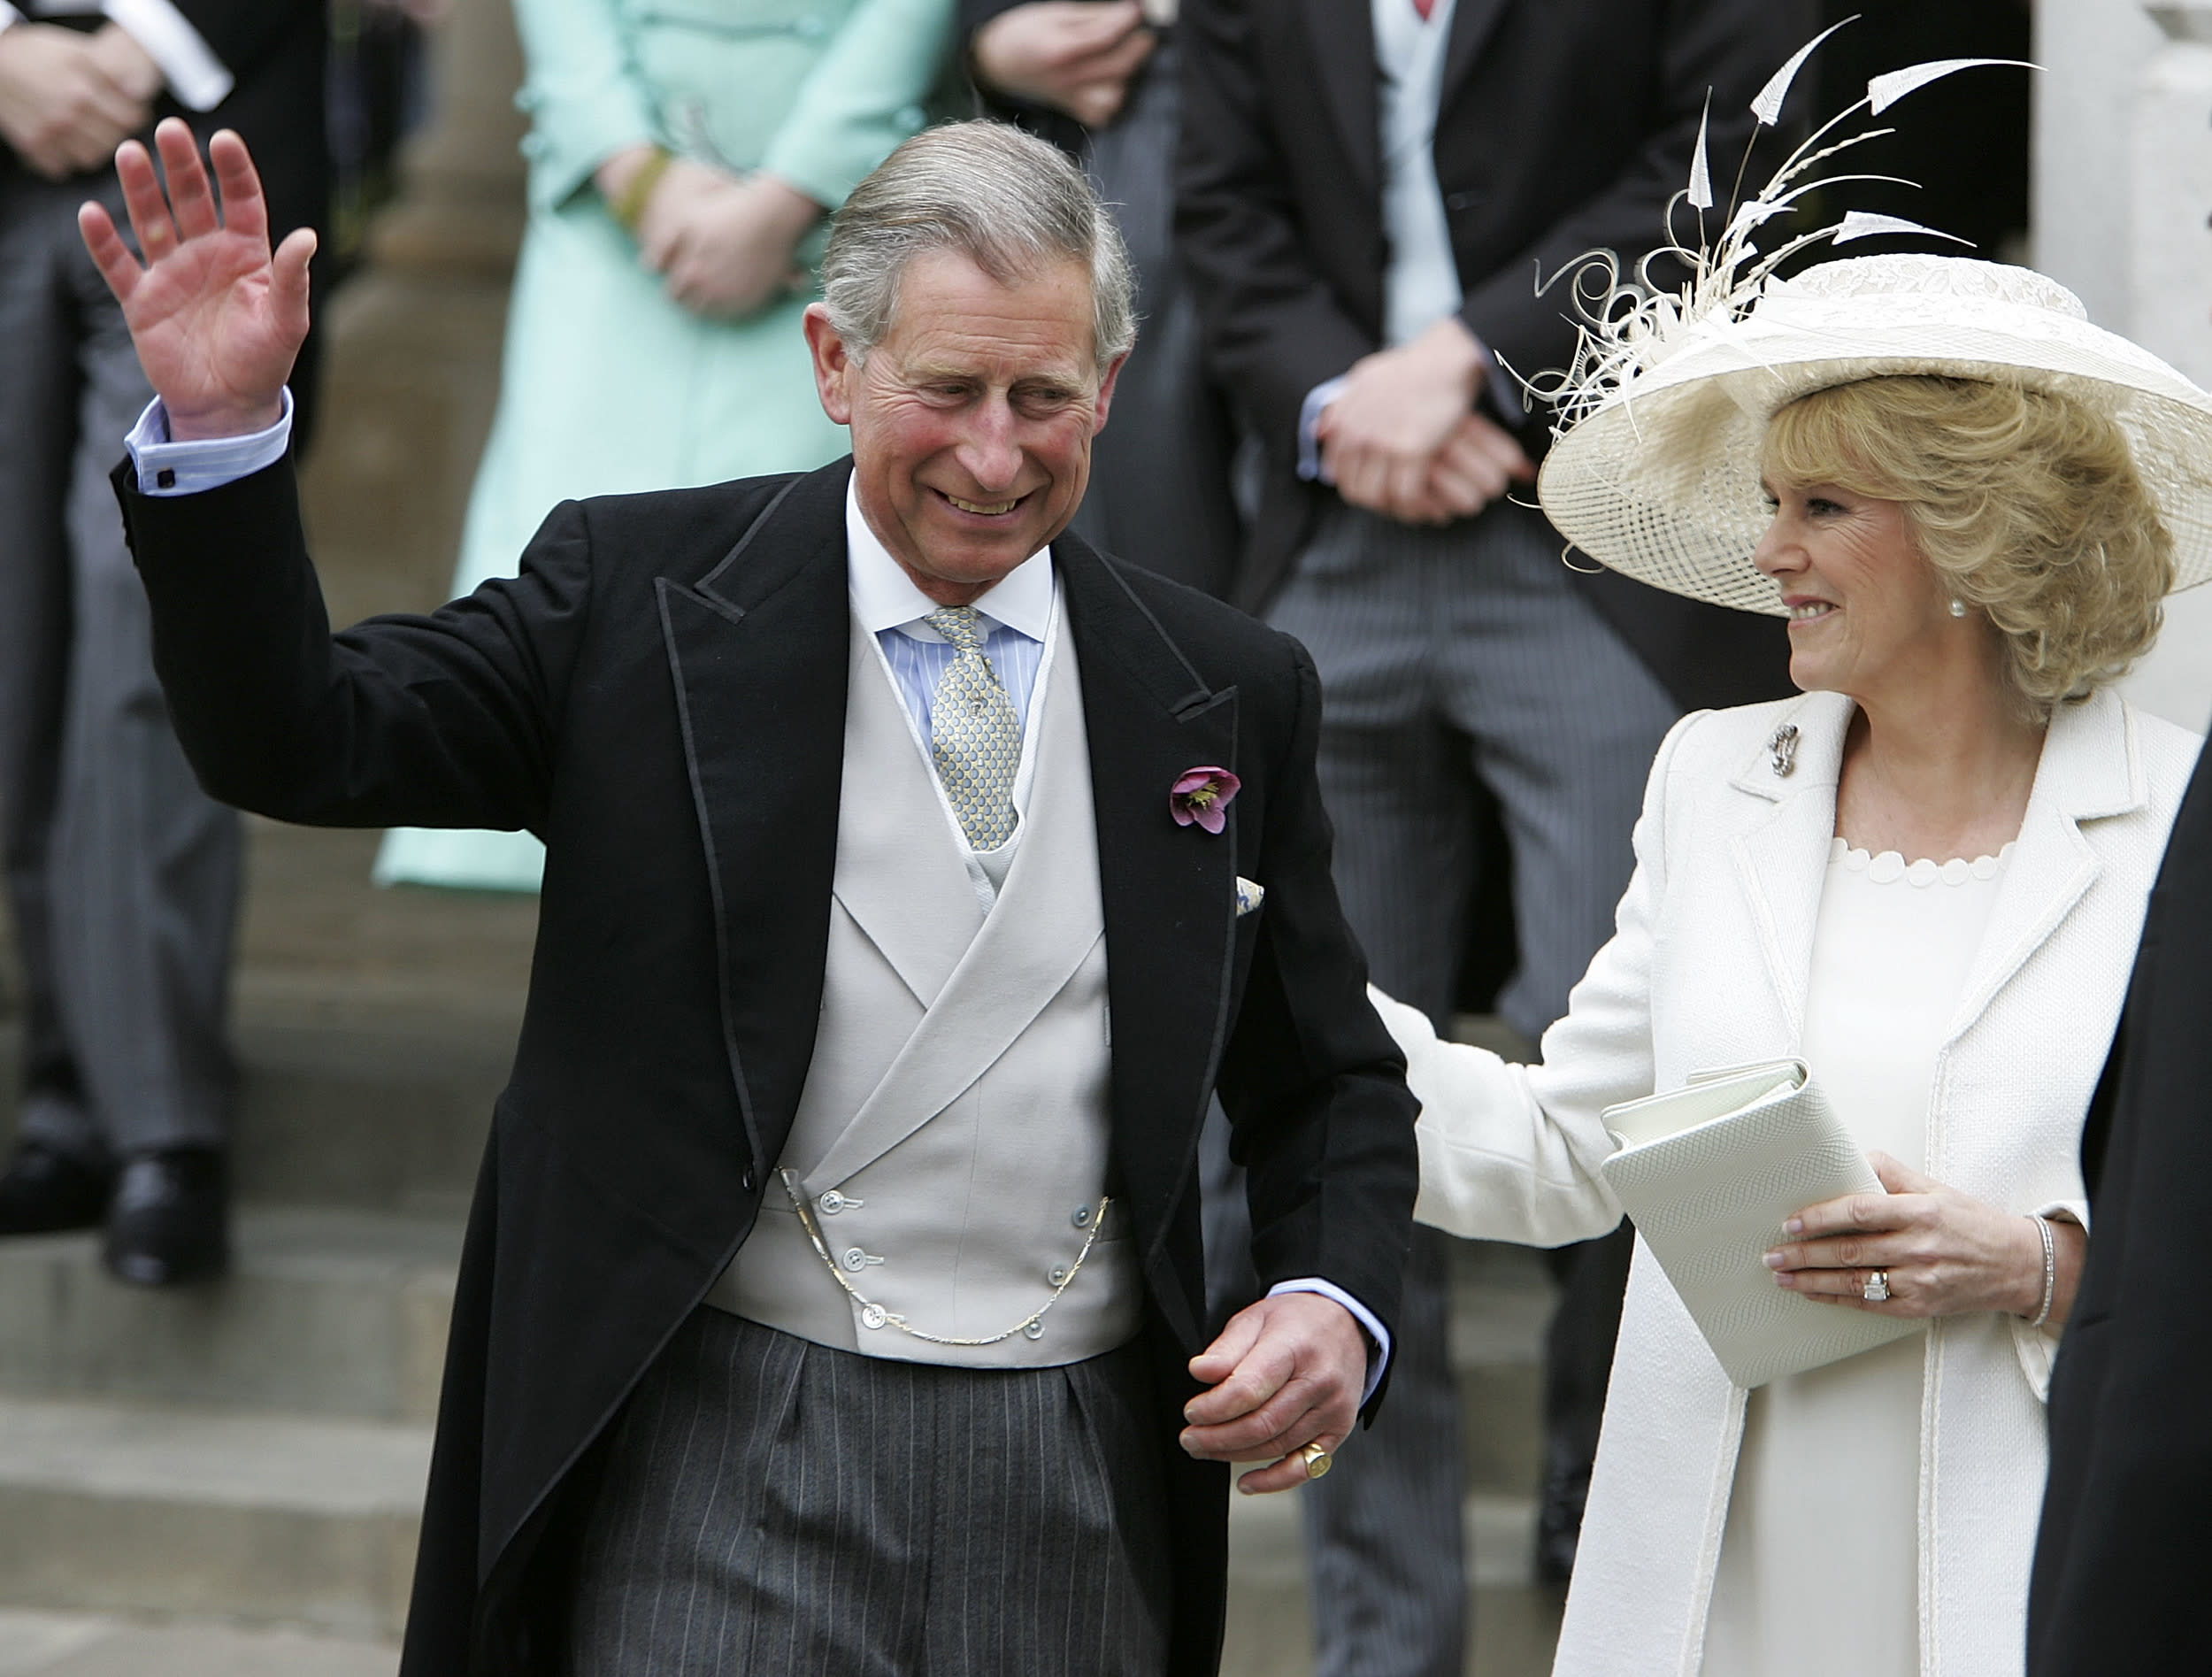 WINDSOR, UNITED KINGDOM - APRIL 09: TRH Prince Charles & The Duchess of Cornwall, Camilla Parker Bowles depart the Civil Ceremony where they were legally married, at The Guildhall, Windsor on April 9, 2005 in Berkshire, England. (Photo by Georges De Keerle/Getty Images)